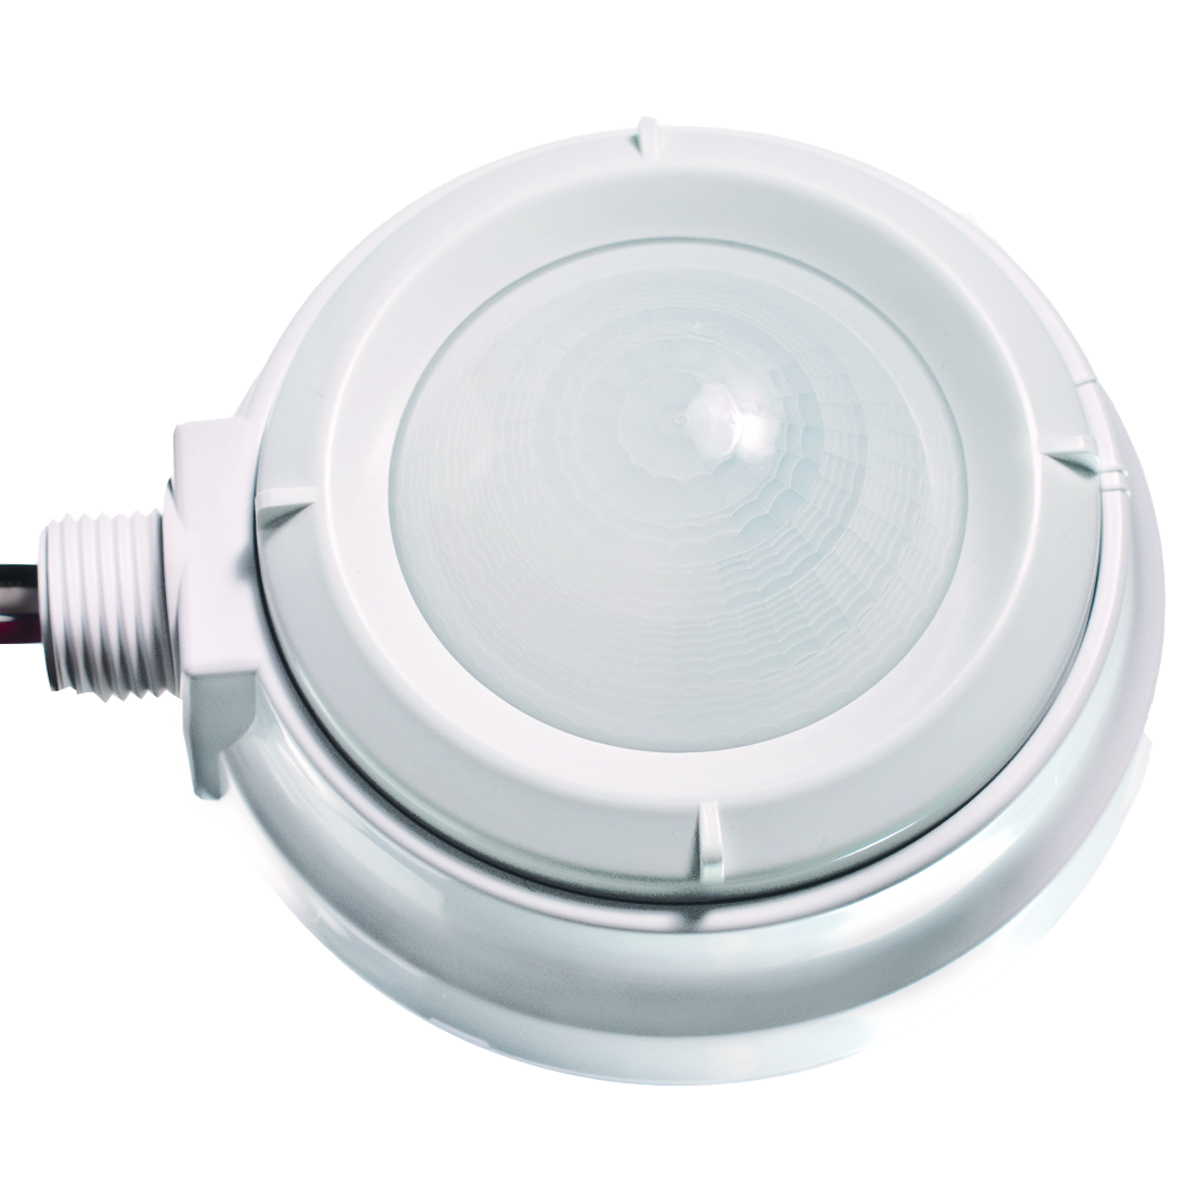 WSPSMUNV HBA WASP2 F1 HIGH BAY SENSOR W DAYLIGHTING SURFACE MNT 1 SPST OUTPUT 120/277/347VAC WHITE